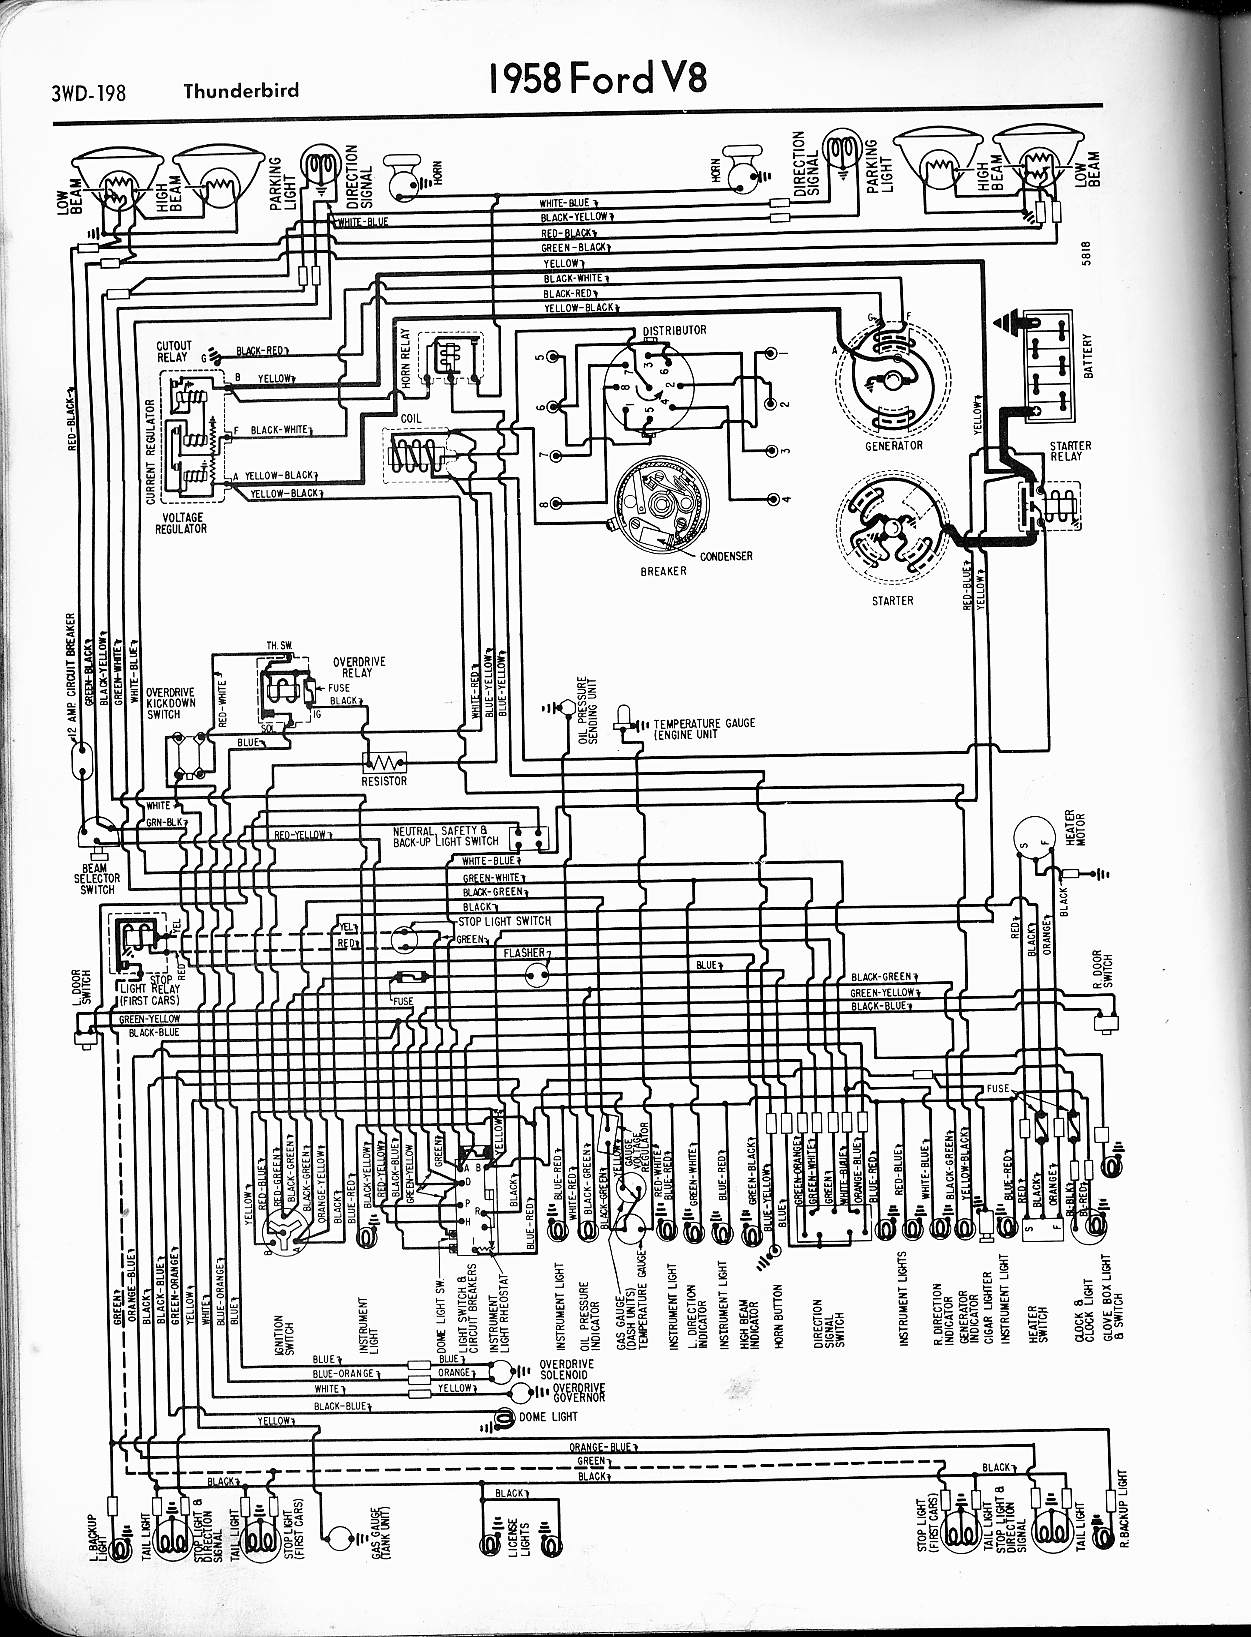 1965 Ford F100 Truck Wiring Diagram - Wiring Library • Dnbnor.co